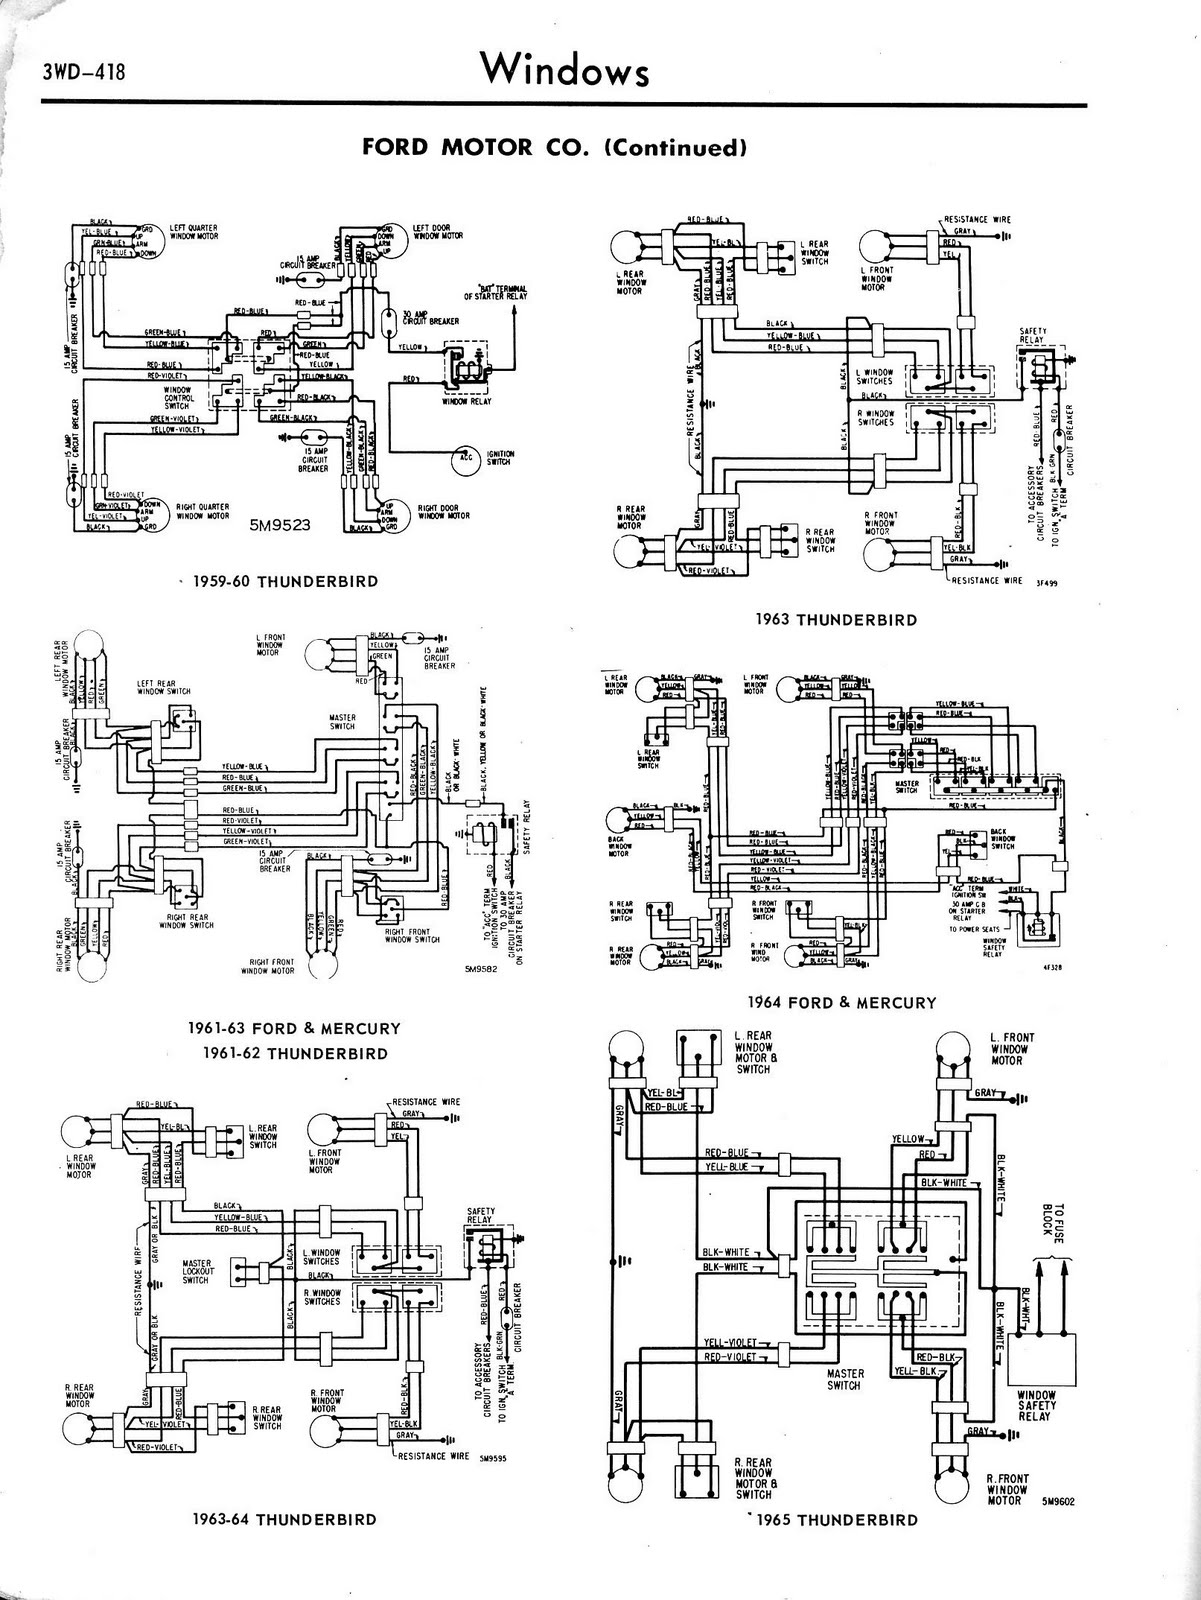 1965+Ford+Thunderbird+Window+Controls+Diagram wiring diagram for 1972 ford f100 the wiring diagram 1964 thunderbird wiring diagram at bayanpartner.co